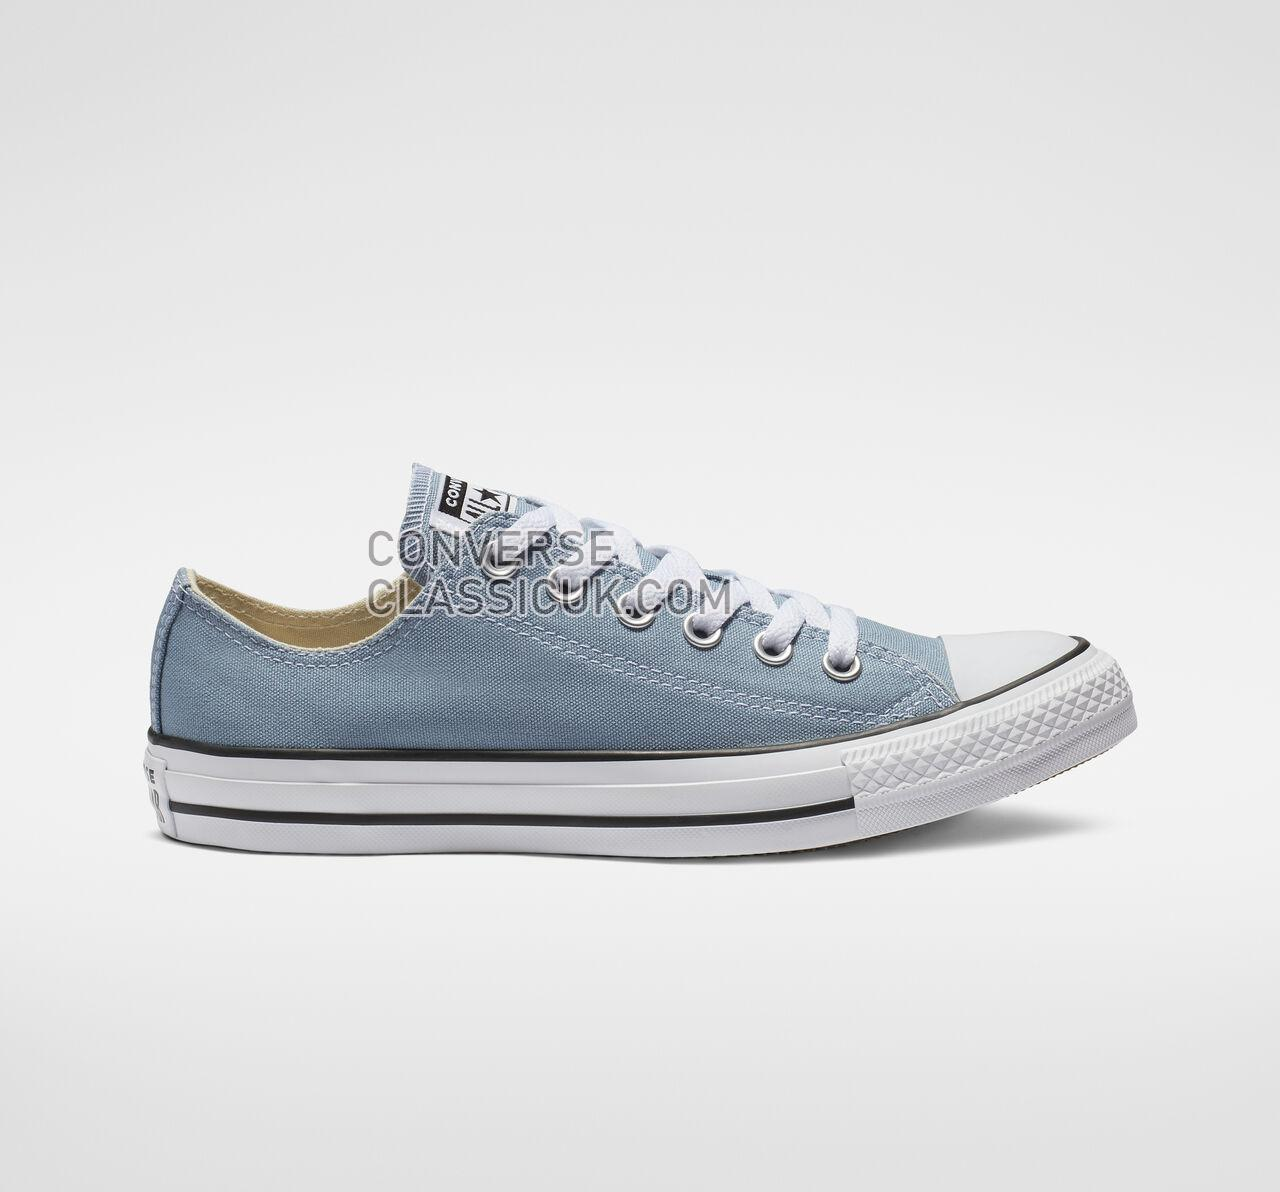 Converse Chuck Taylor All Star Seasonal Color Low Top Mens Womens Unisex 162116F Washed Denim Shoes